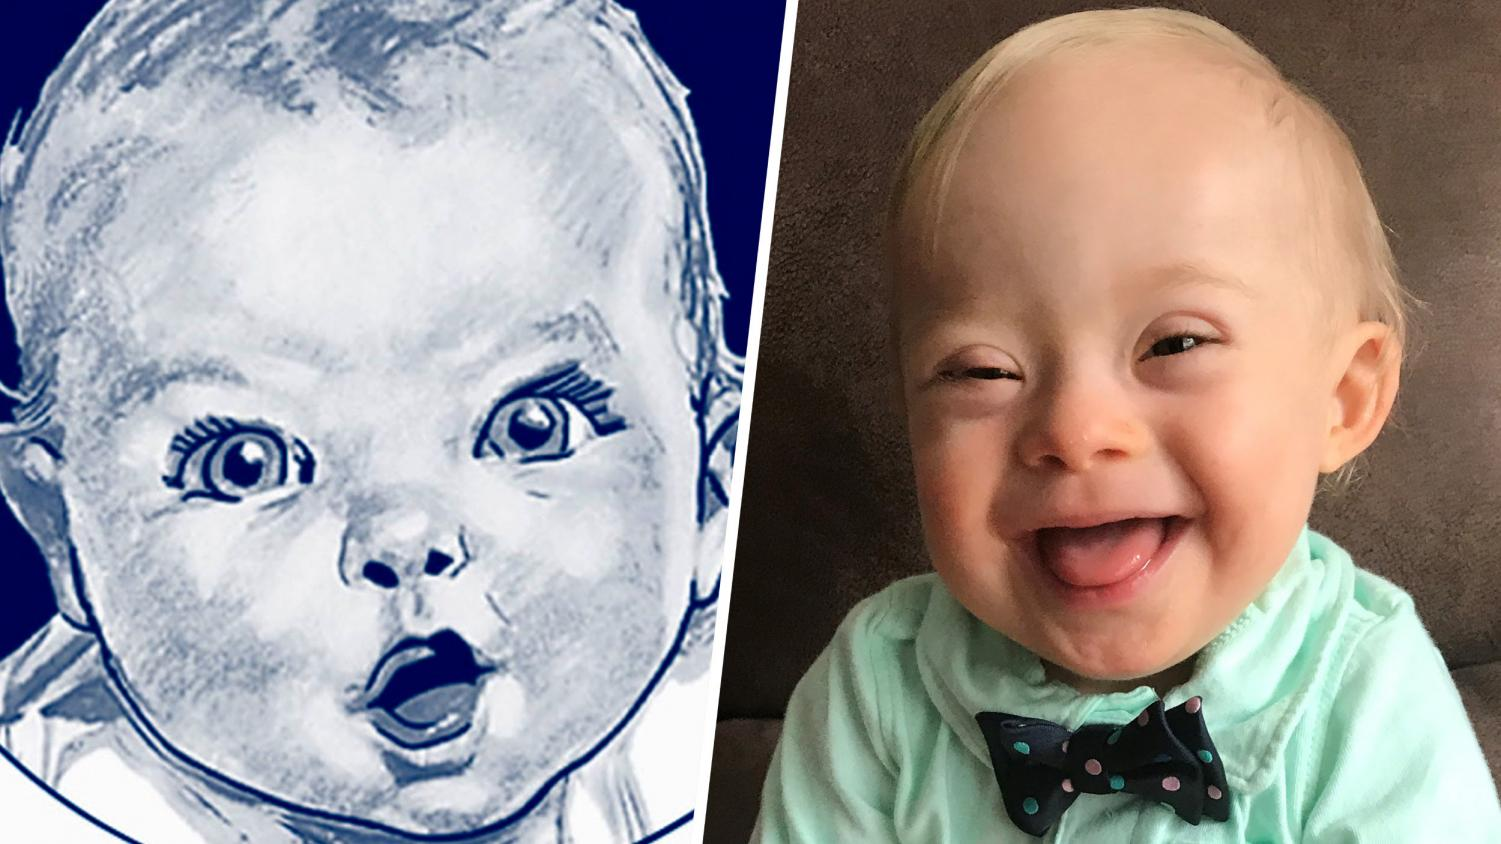 This year's Gerber baby photo choice is especially significant because the 2018 baby is the first with down syndrome.